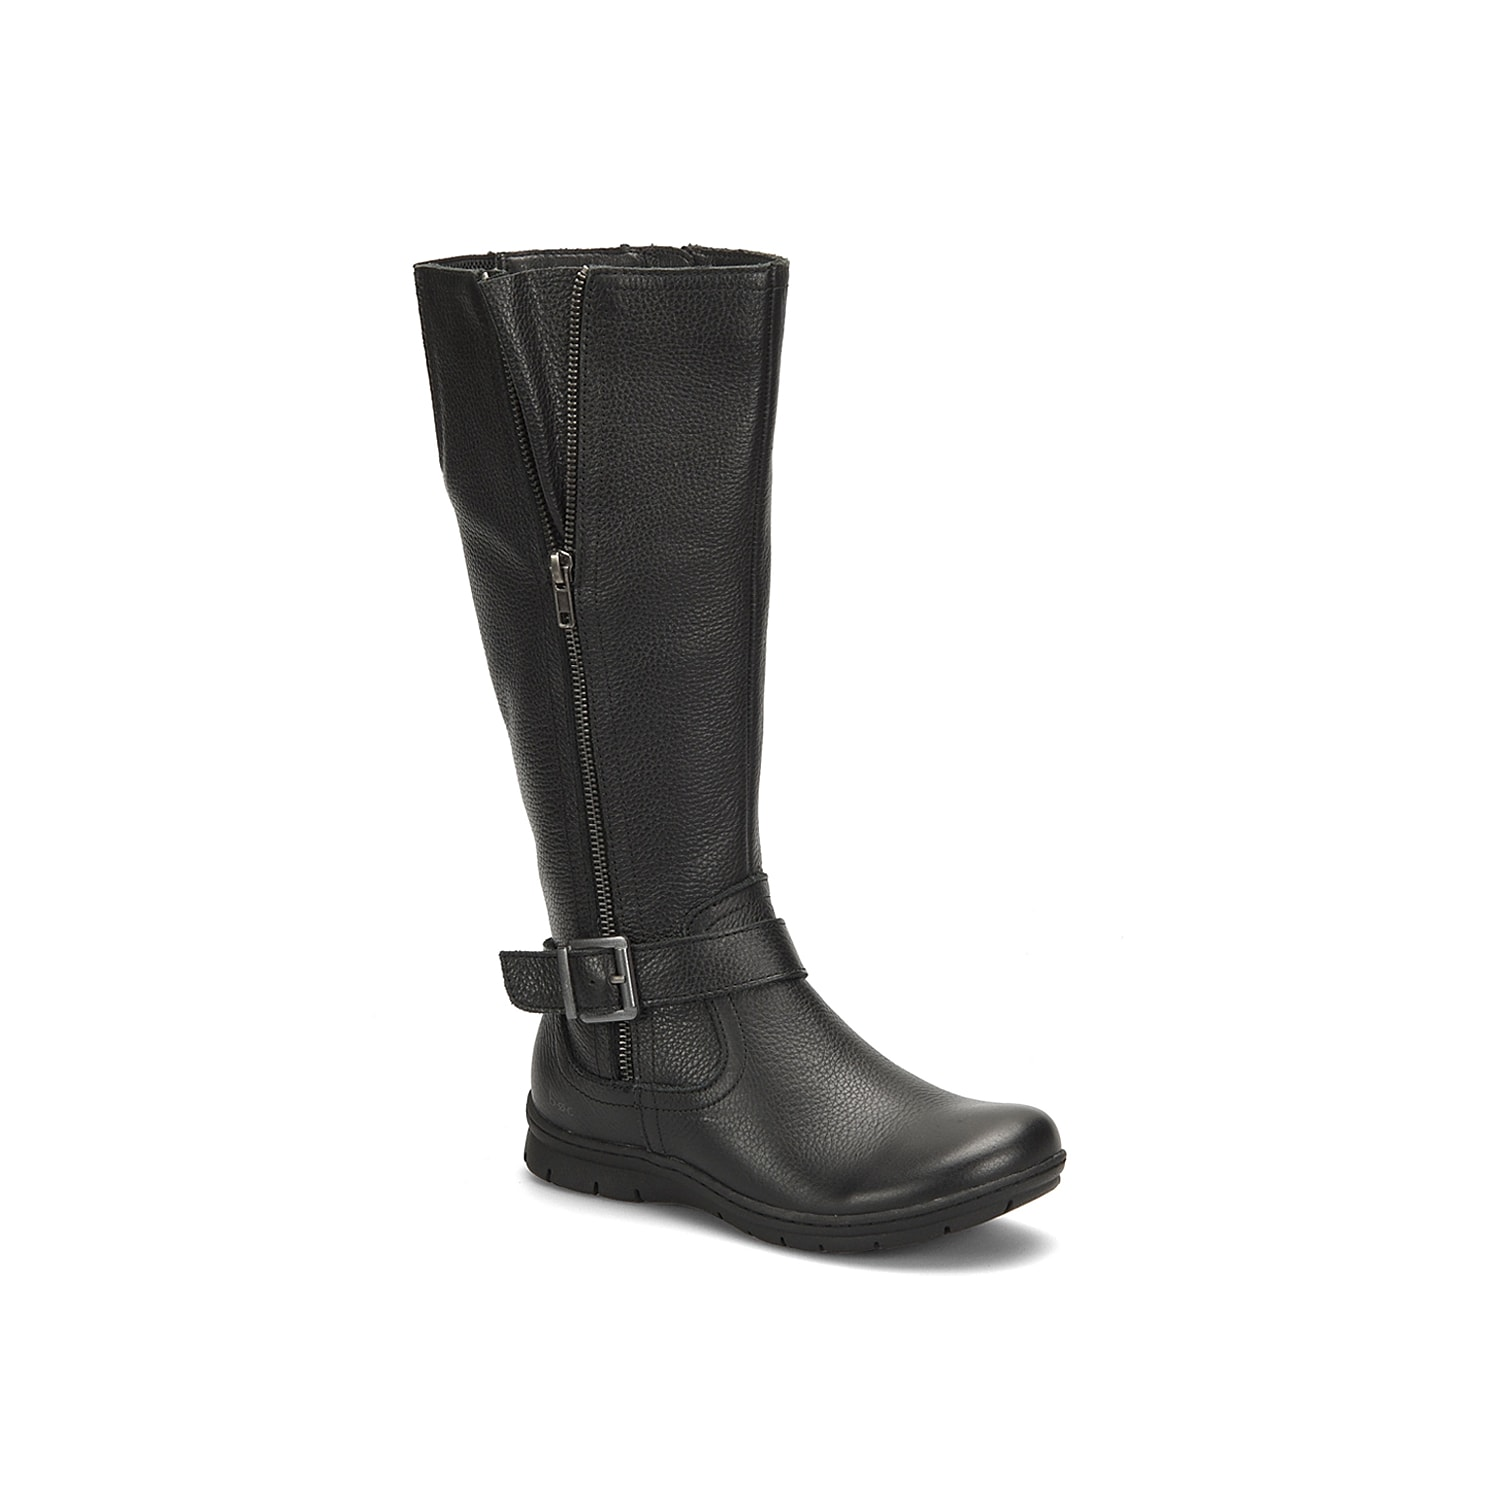 Sleek and stylish, the Pauline riding boot from Born Concept is a cold weather favorite. Made of full grain leather, this tall boot features wraparound buckle strap at the ankle, dual-sided zippers and elastic panel at the back.Click here for Boot Measuring Guide.